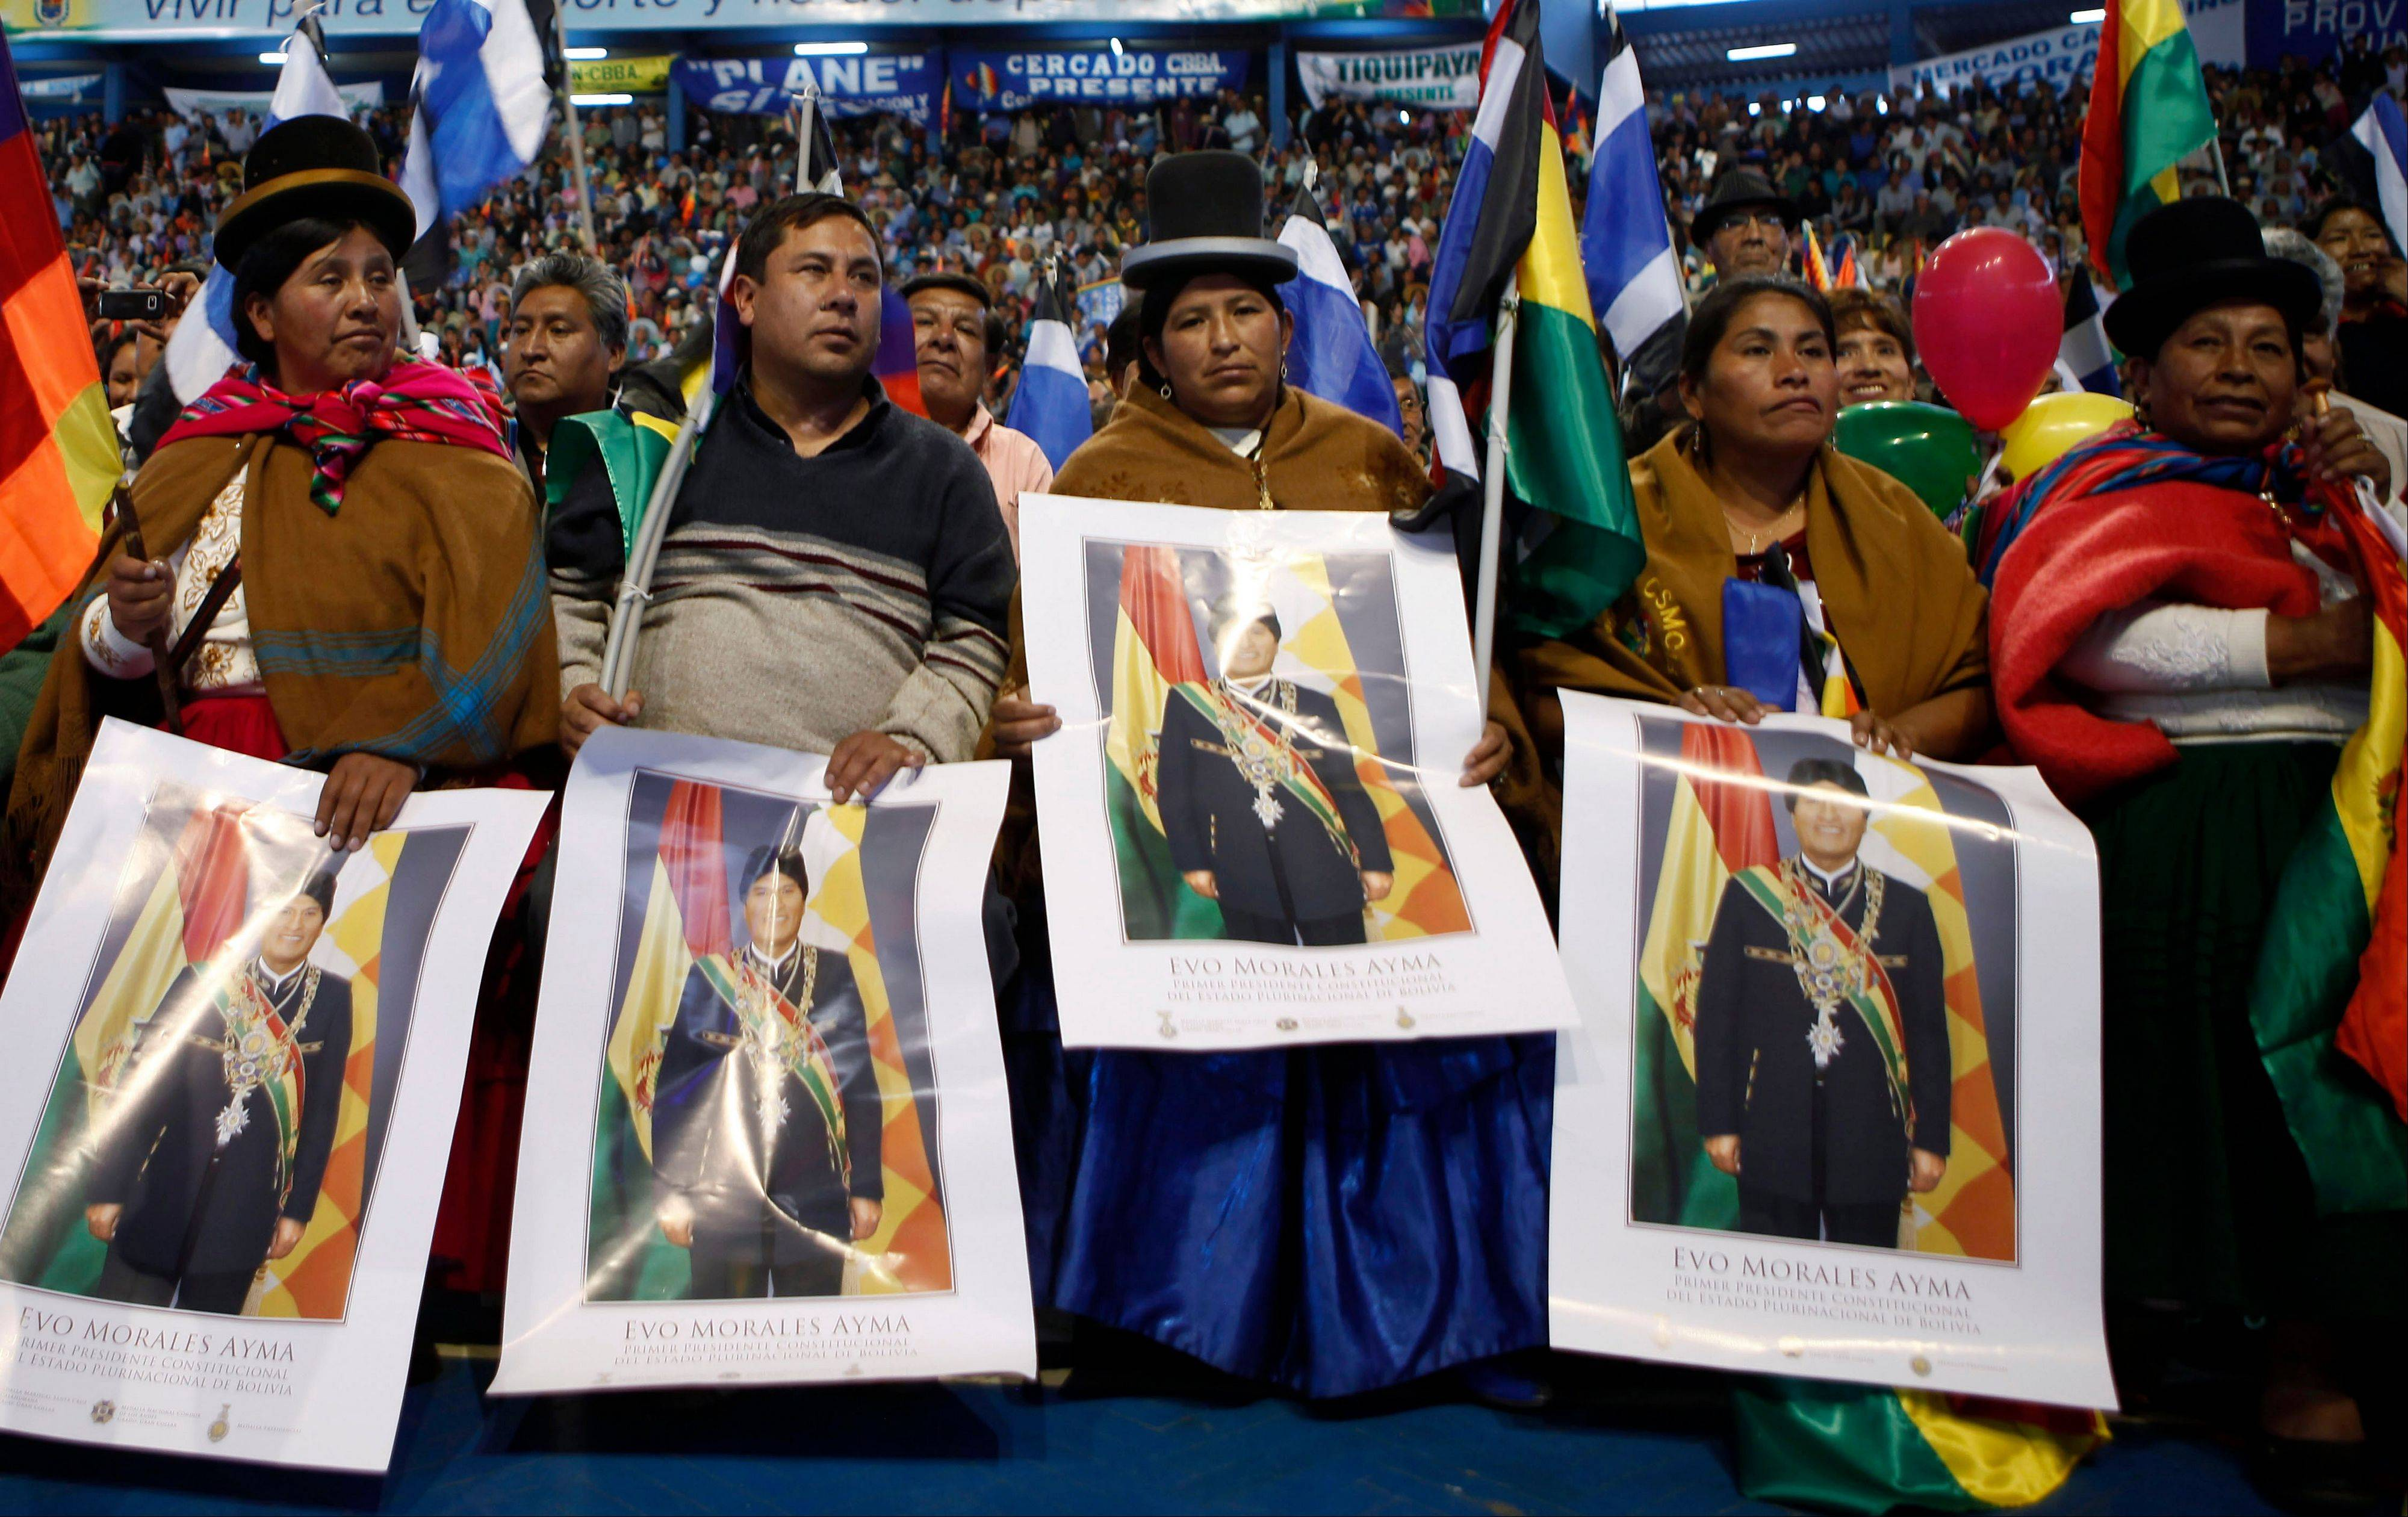 Aymara women hold a posters of Bolivia's President Evo Morales during a welcome ceremony for presidents attending an extraordinary meeting in Cochabamba, Bolivia, Thursday, July 4, 2013. Leaders of Uruguay, Ecuador, Suriname, Argentina and Venezuela are meeting in Bolivia Thursday in support of Morales, who said Thursday that the rerouting of his plane in Europe, over suspicions that National Security Agency leaker Edward Snowden was on board was a plot by the U.S. to intimidate him and other Latin American leaders.